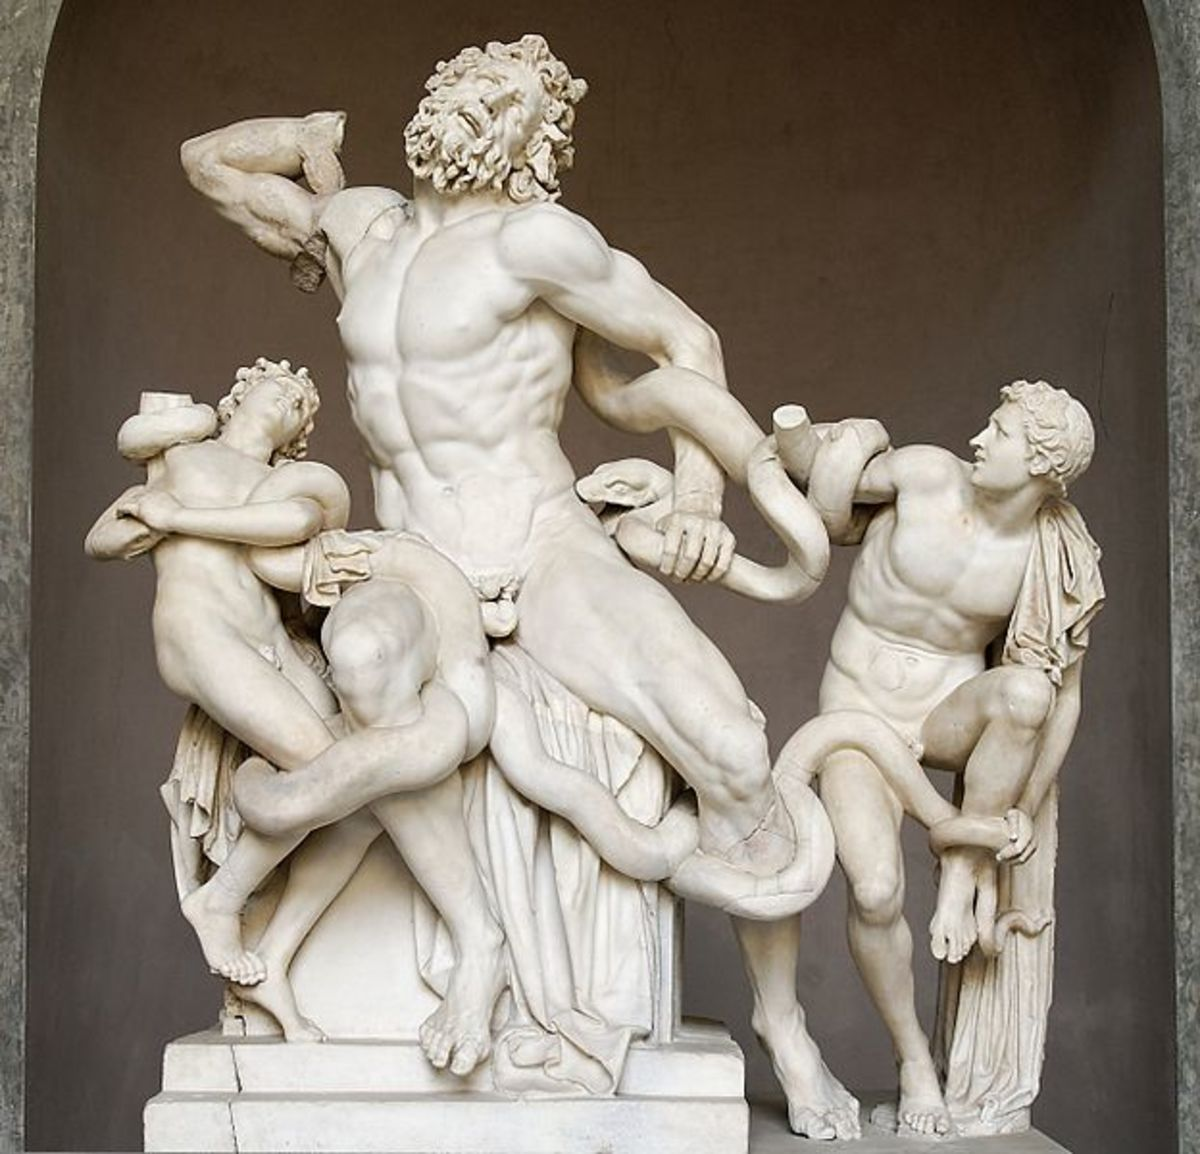 Laocoön with the sons, marble copy discovered nearby Rome in 1506 (I century b.C?), Vatican Museums